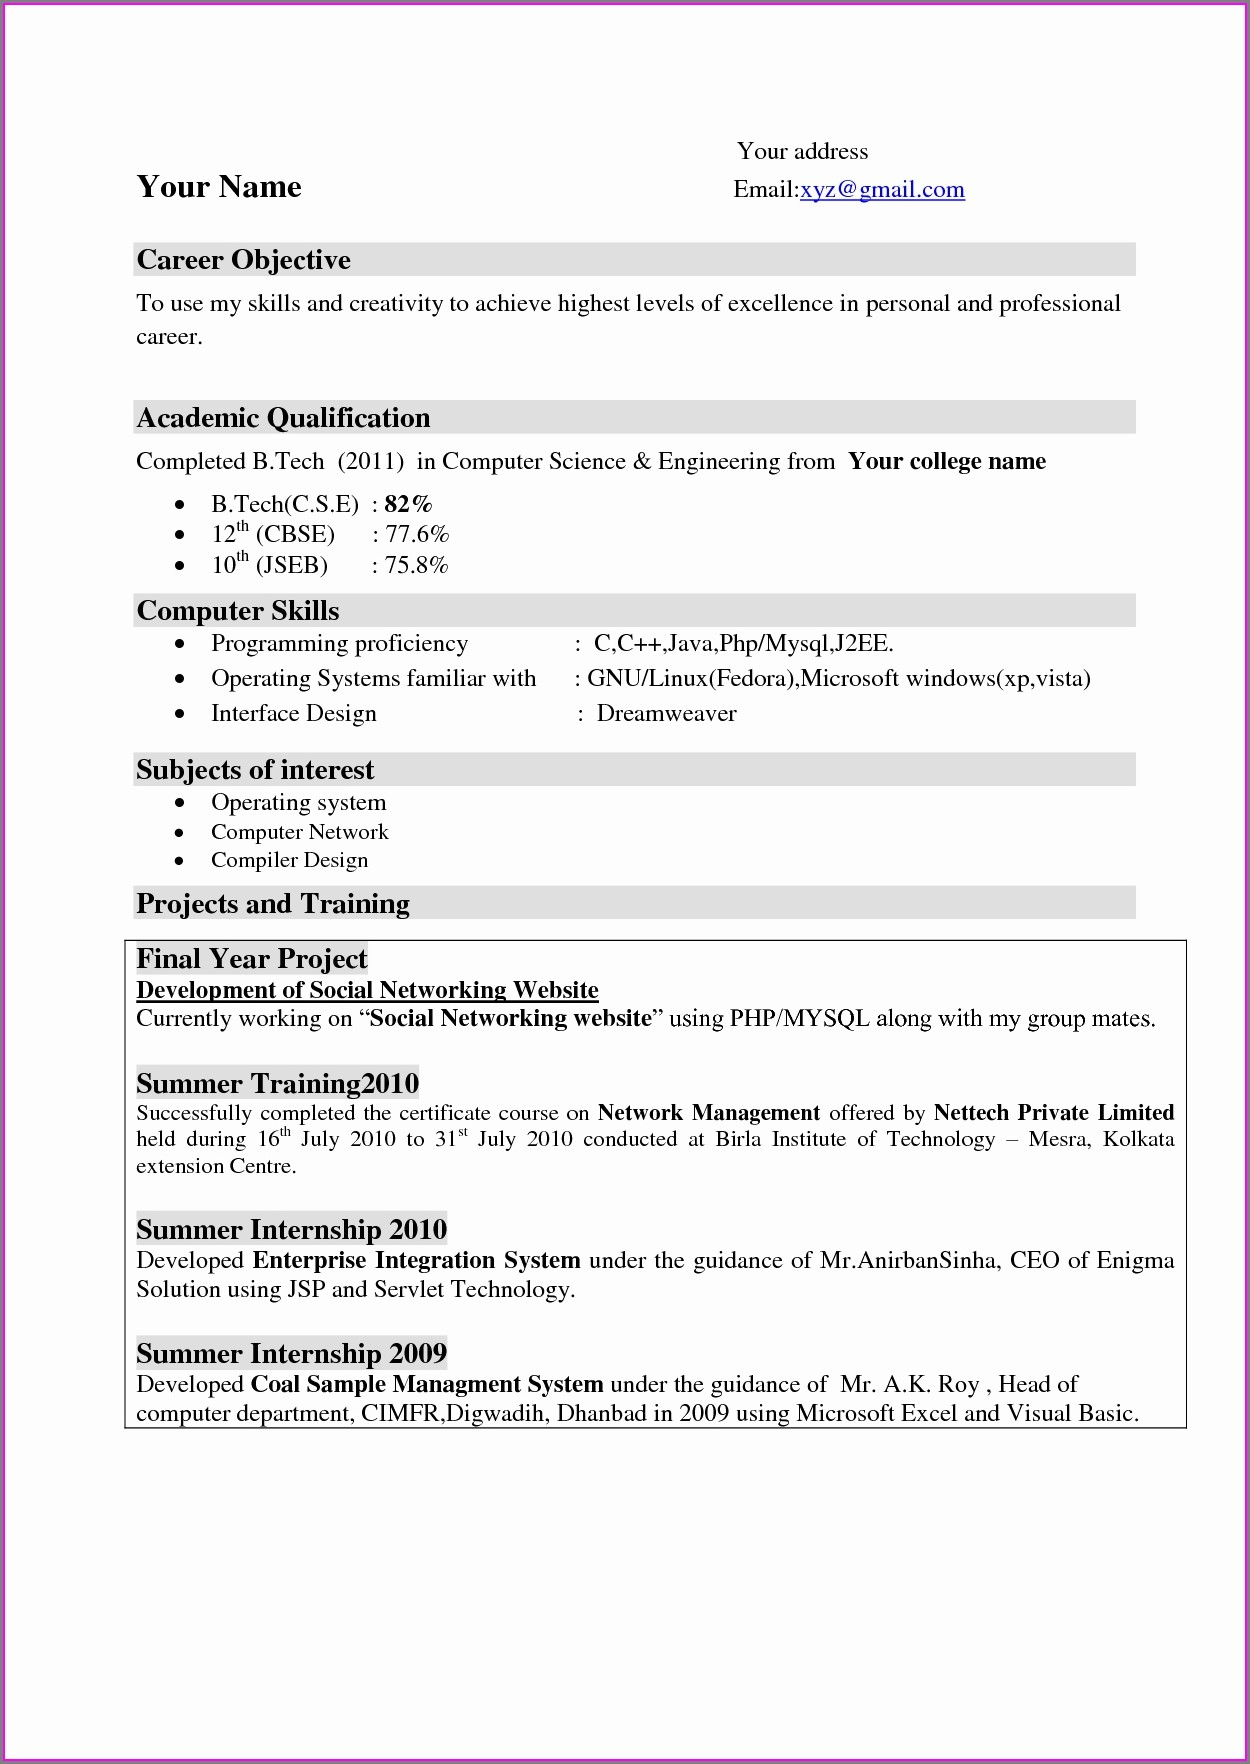 Resume Format Free Download For Students